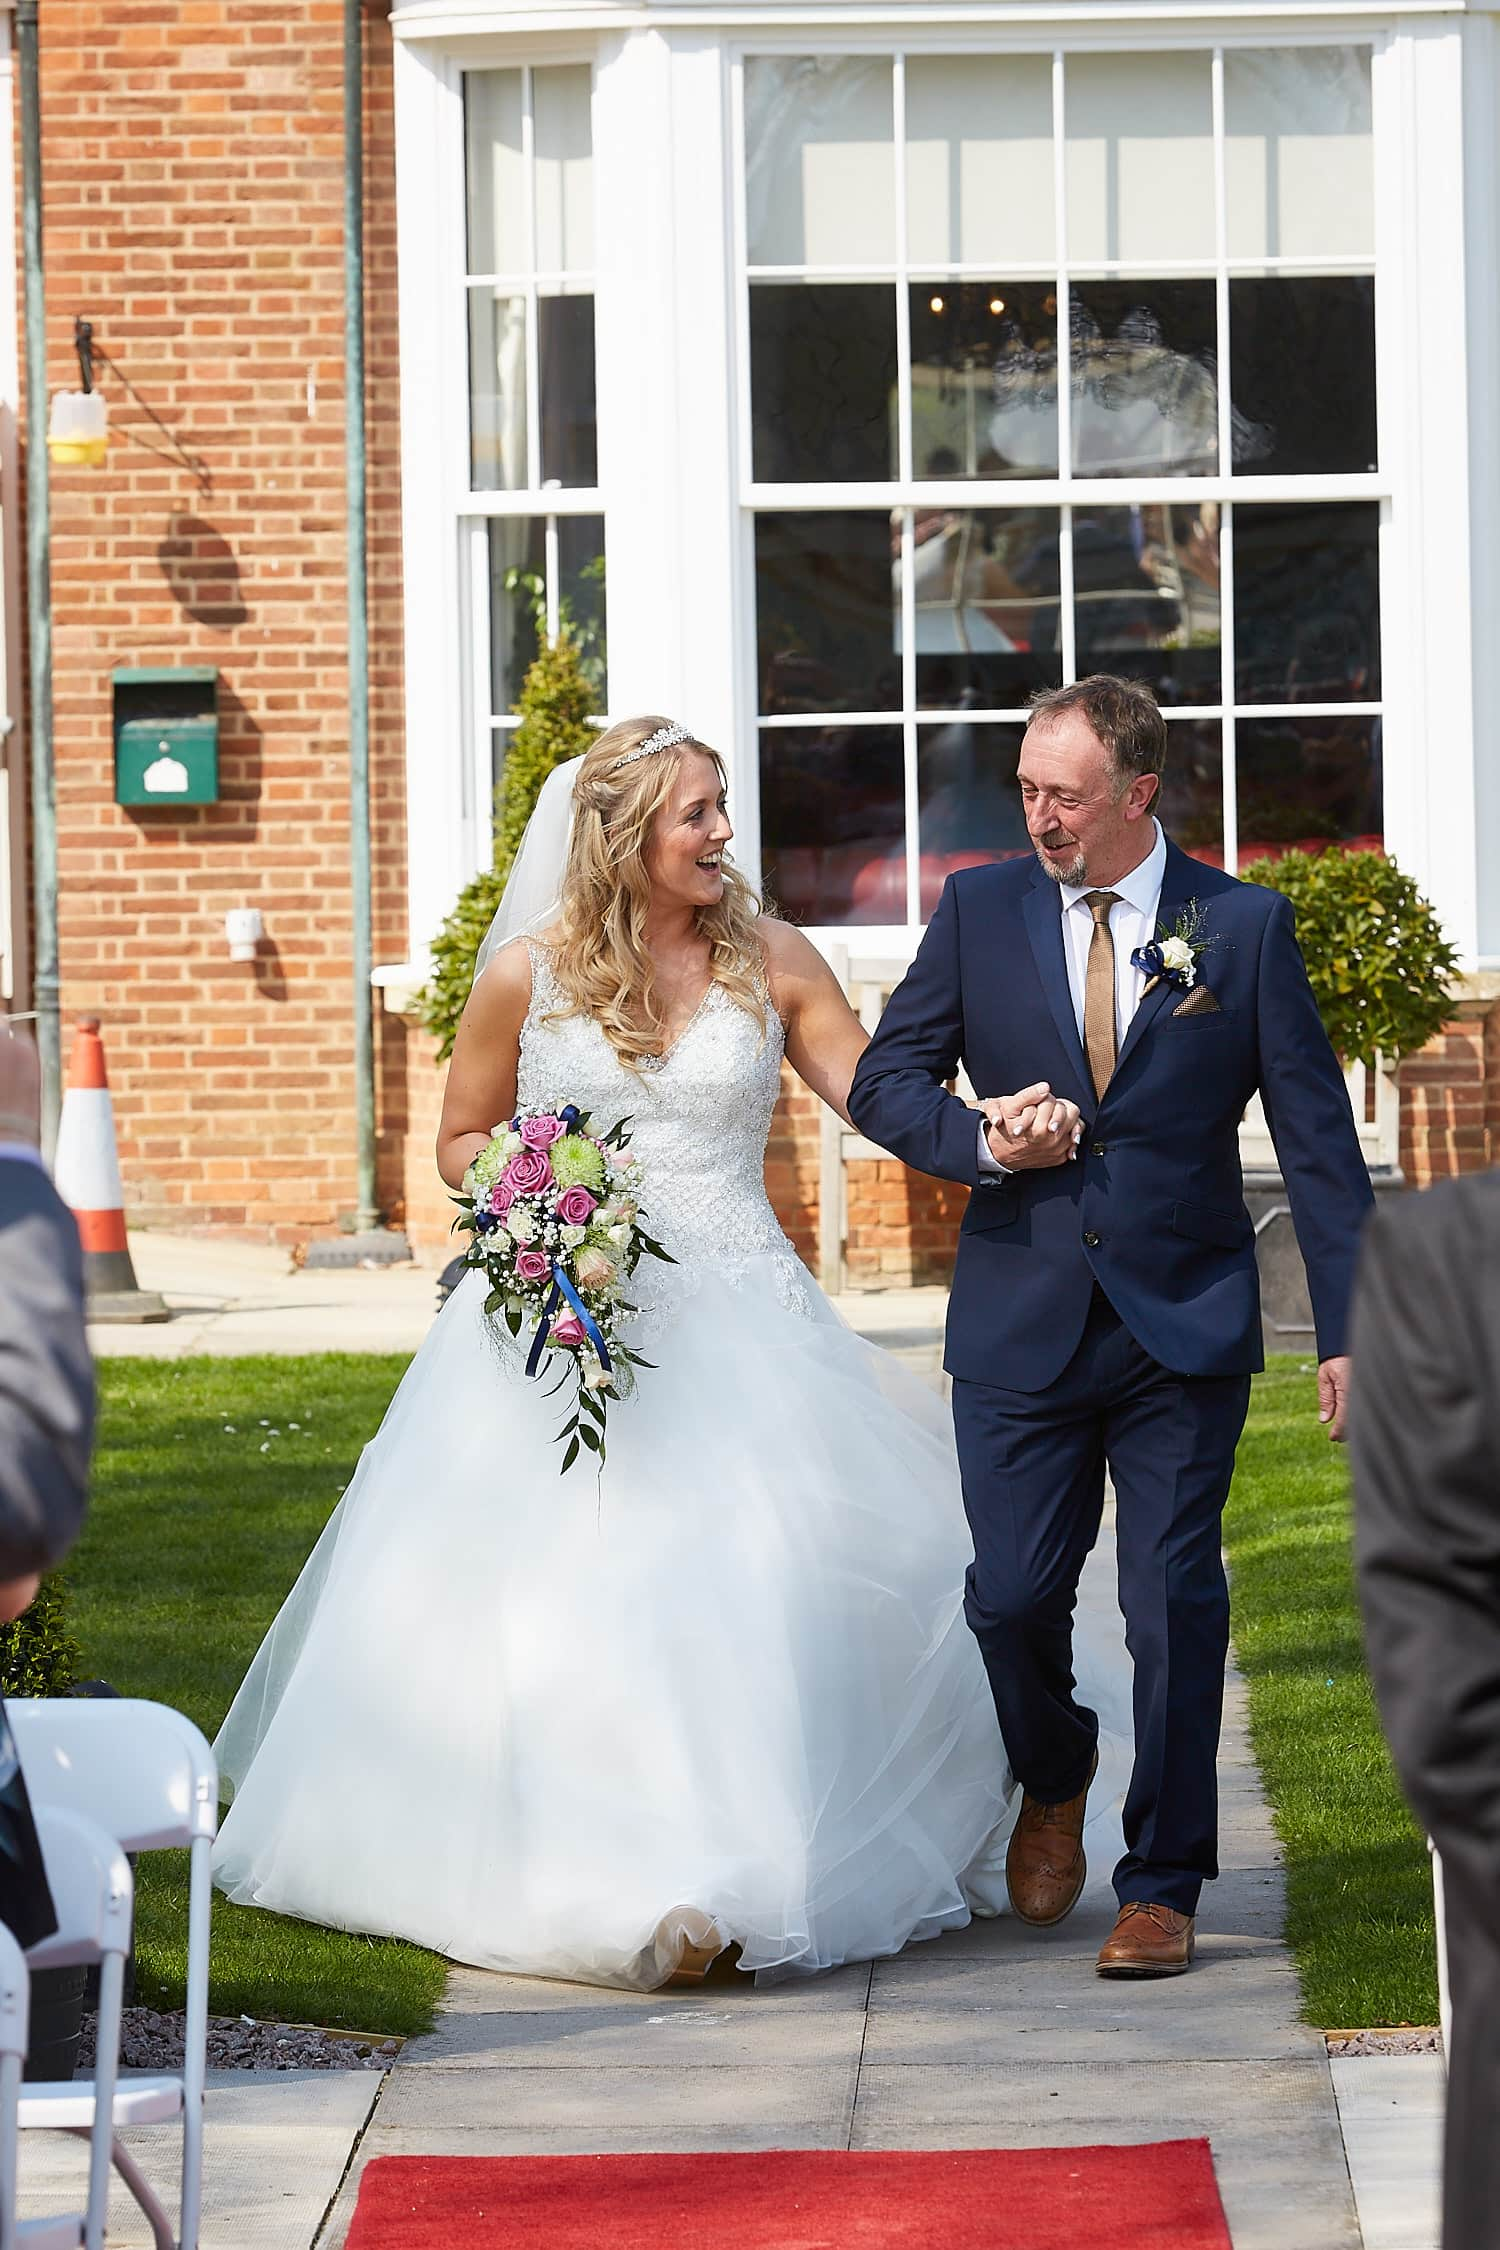 A father walks his daughter down the aisle at Kenwick Park Hotel, Louth